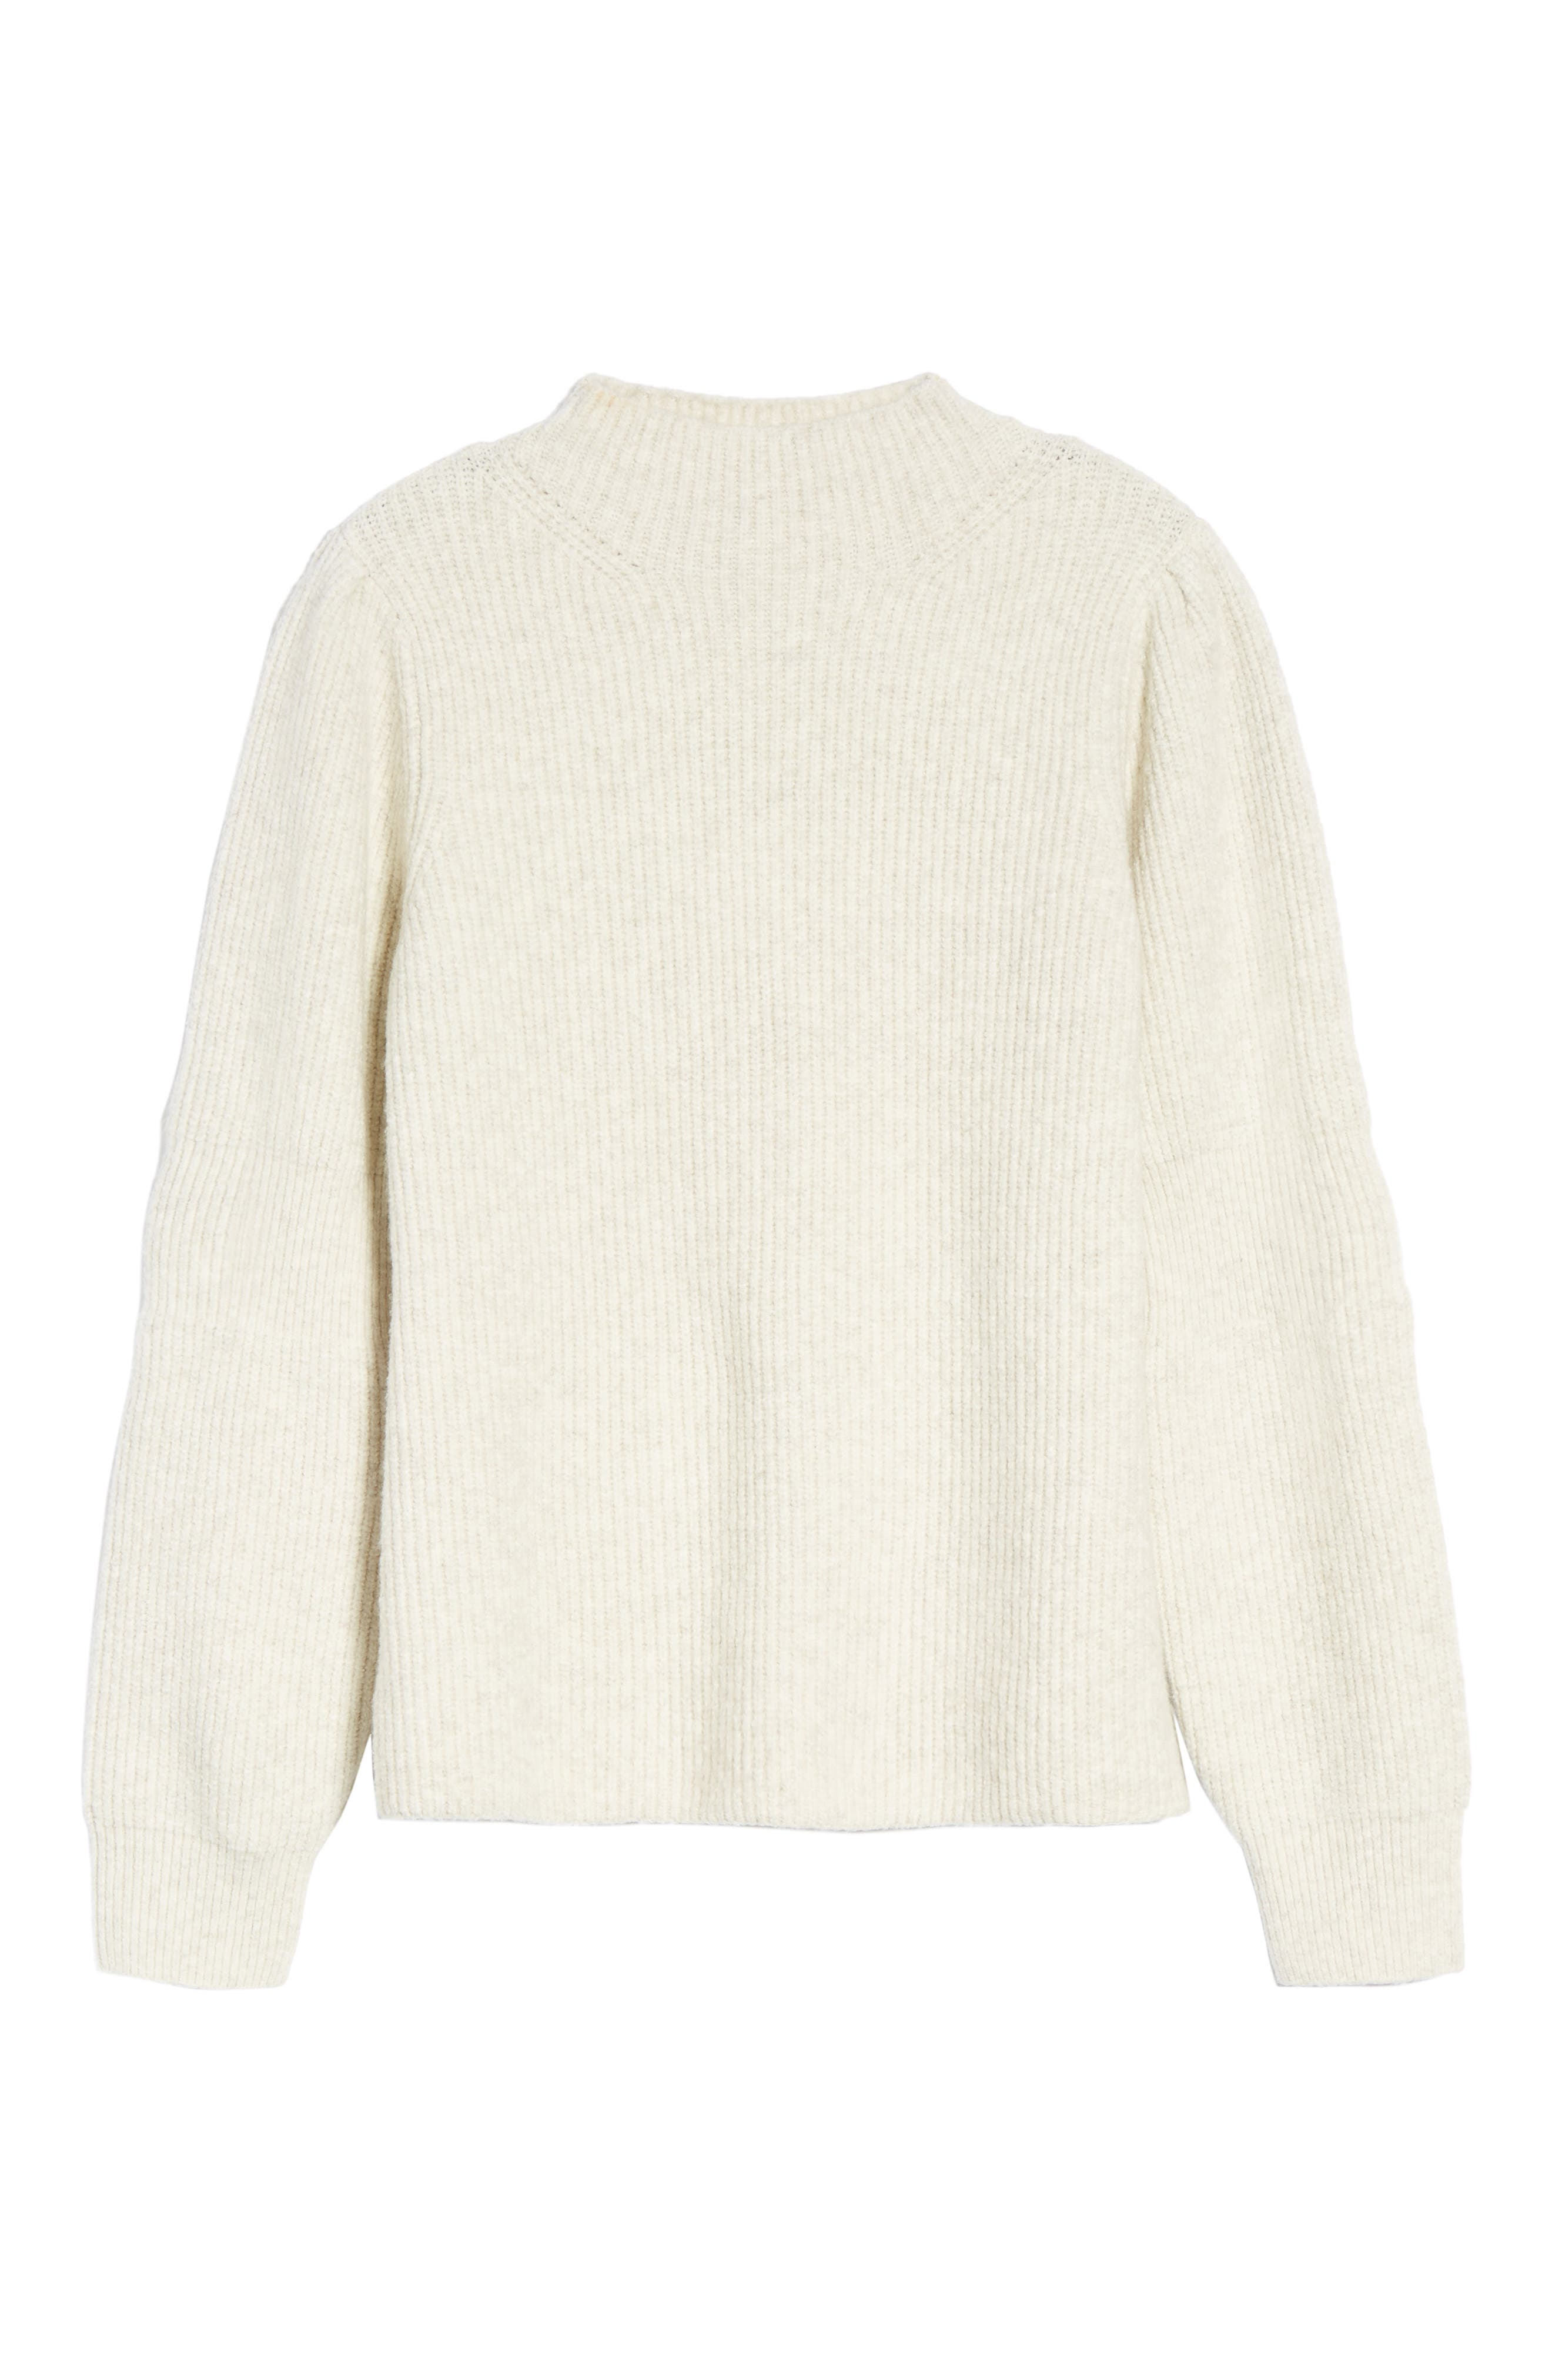 Ribbed Mock Neck Sweater,                             Alternate thumbnail 6, color,